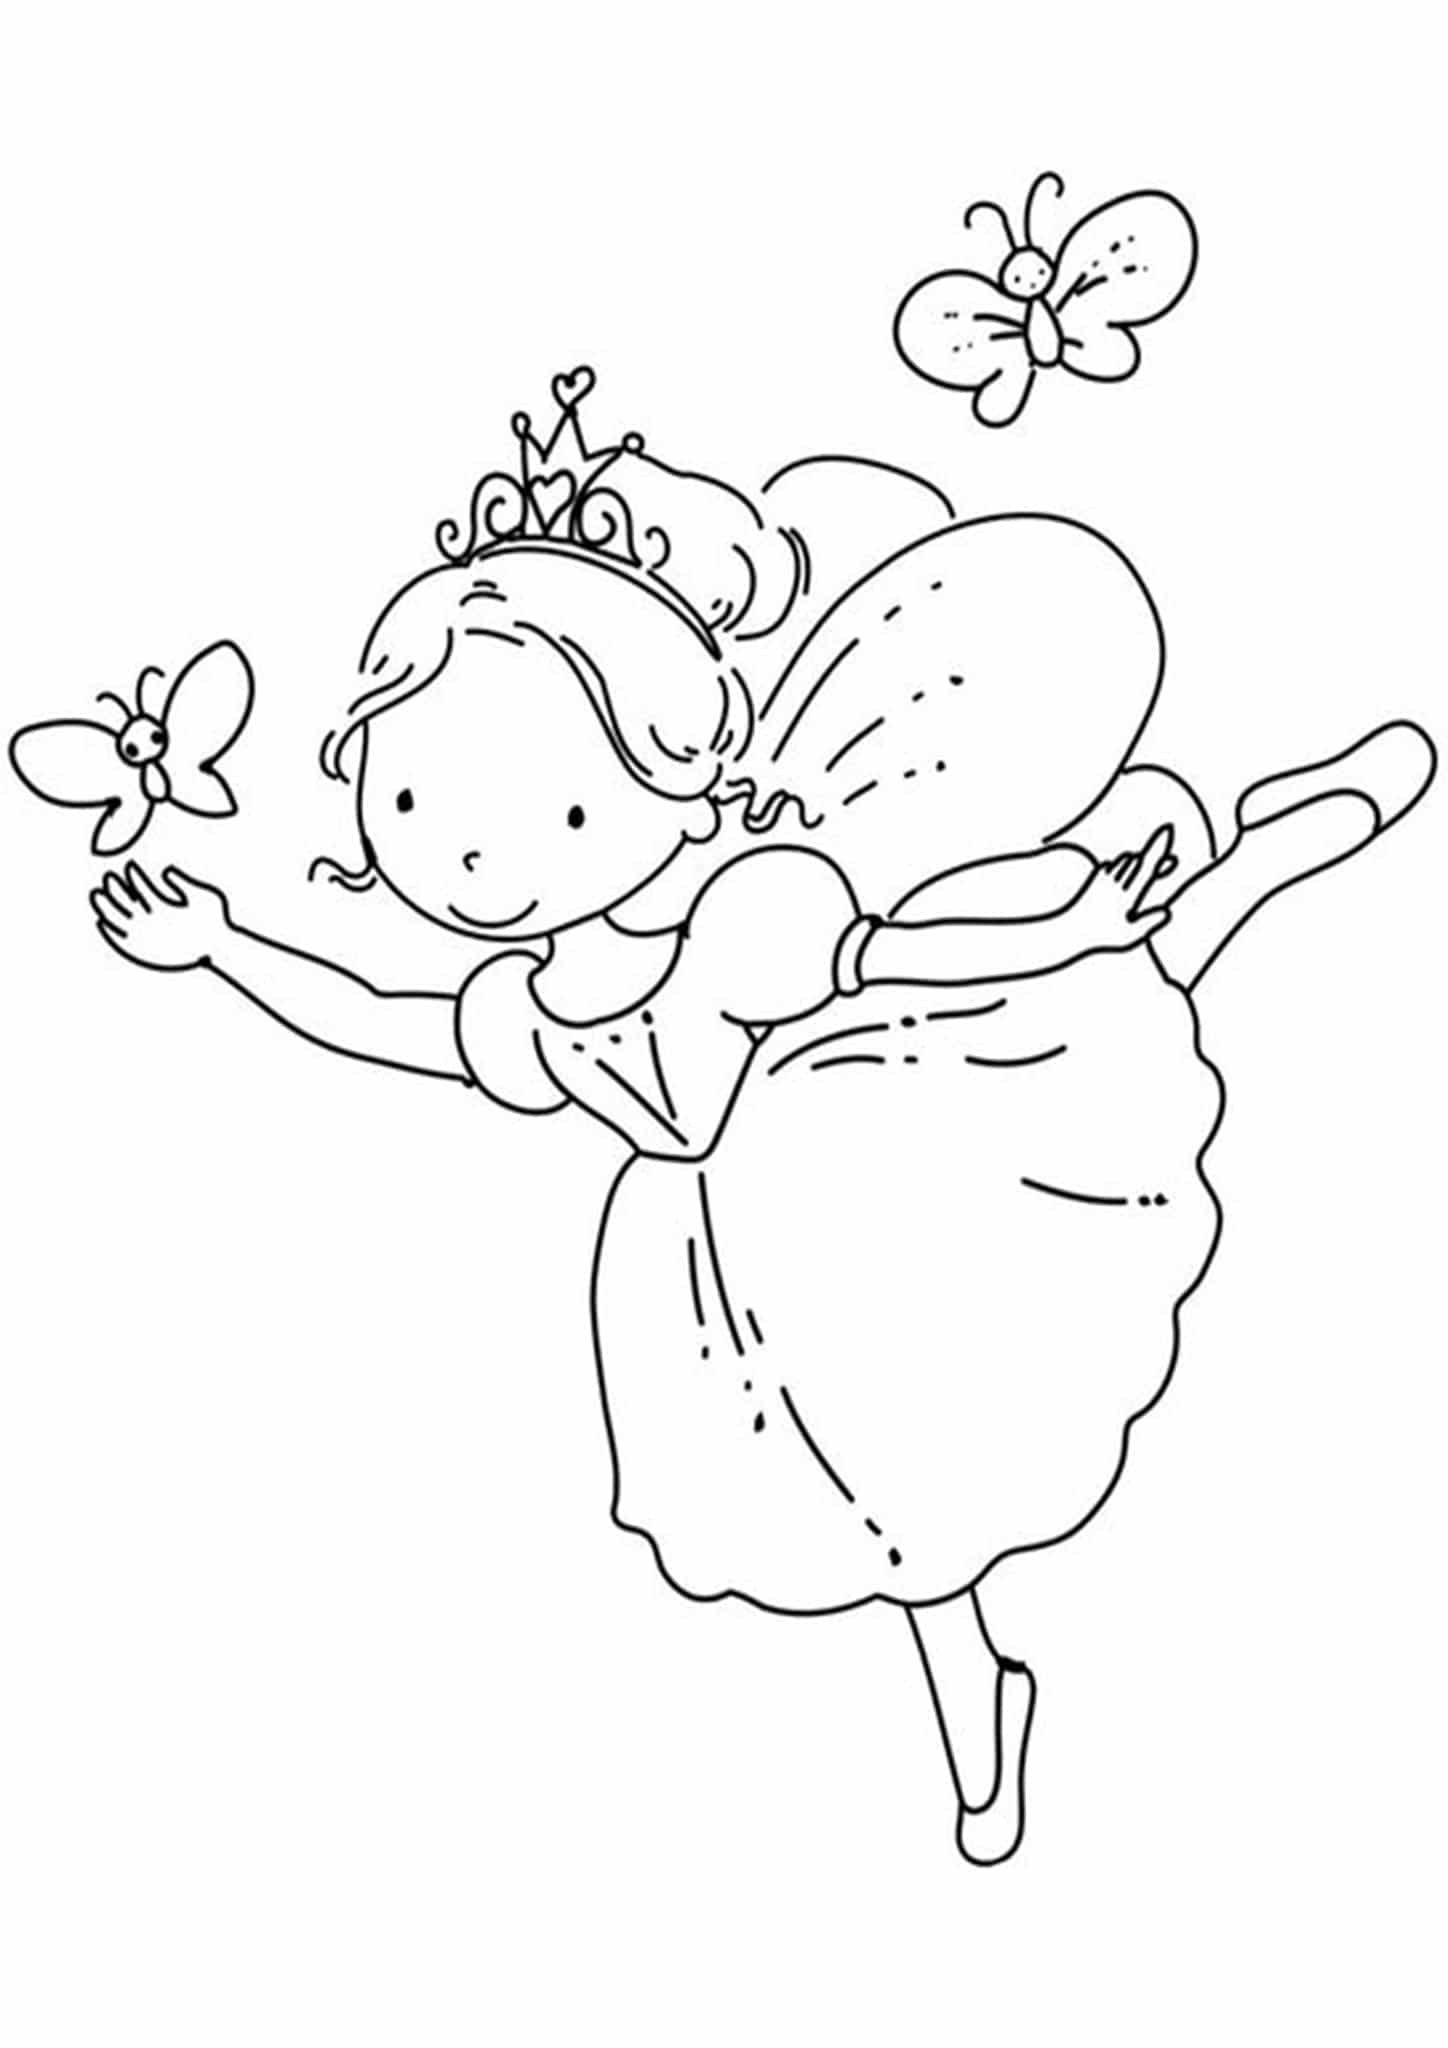 Free Easy To Print Fairy Coloring Pages Fairy Coloring Pages Fairy Coloring Ballerina Coloring Pages